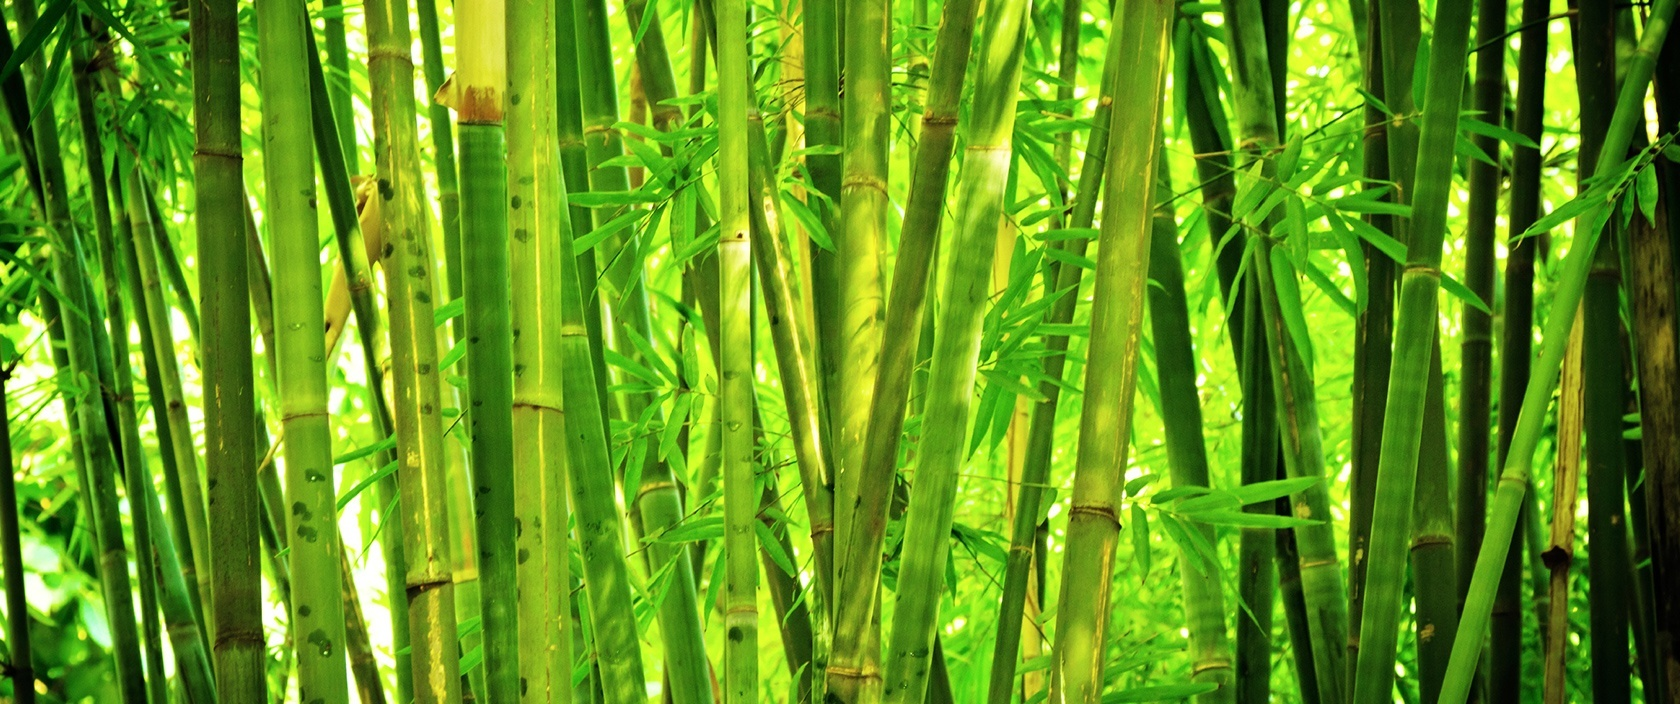 HQ Bamboo Wallpapers | File 474.19Kb